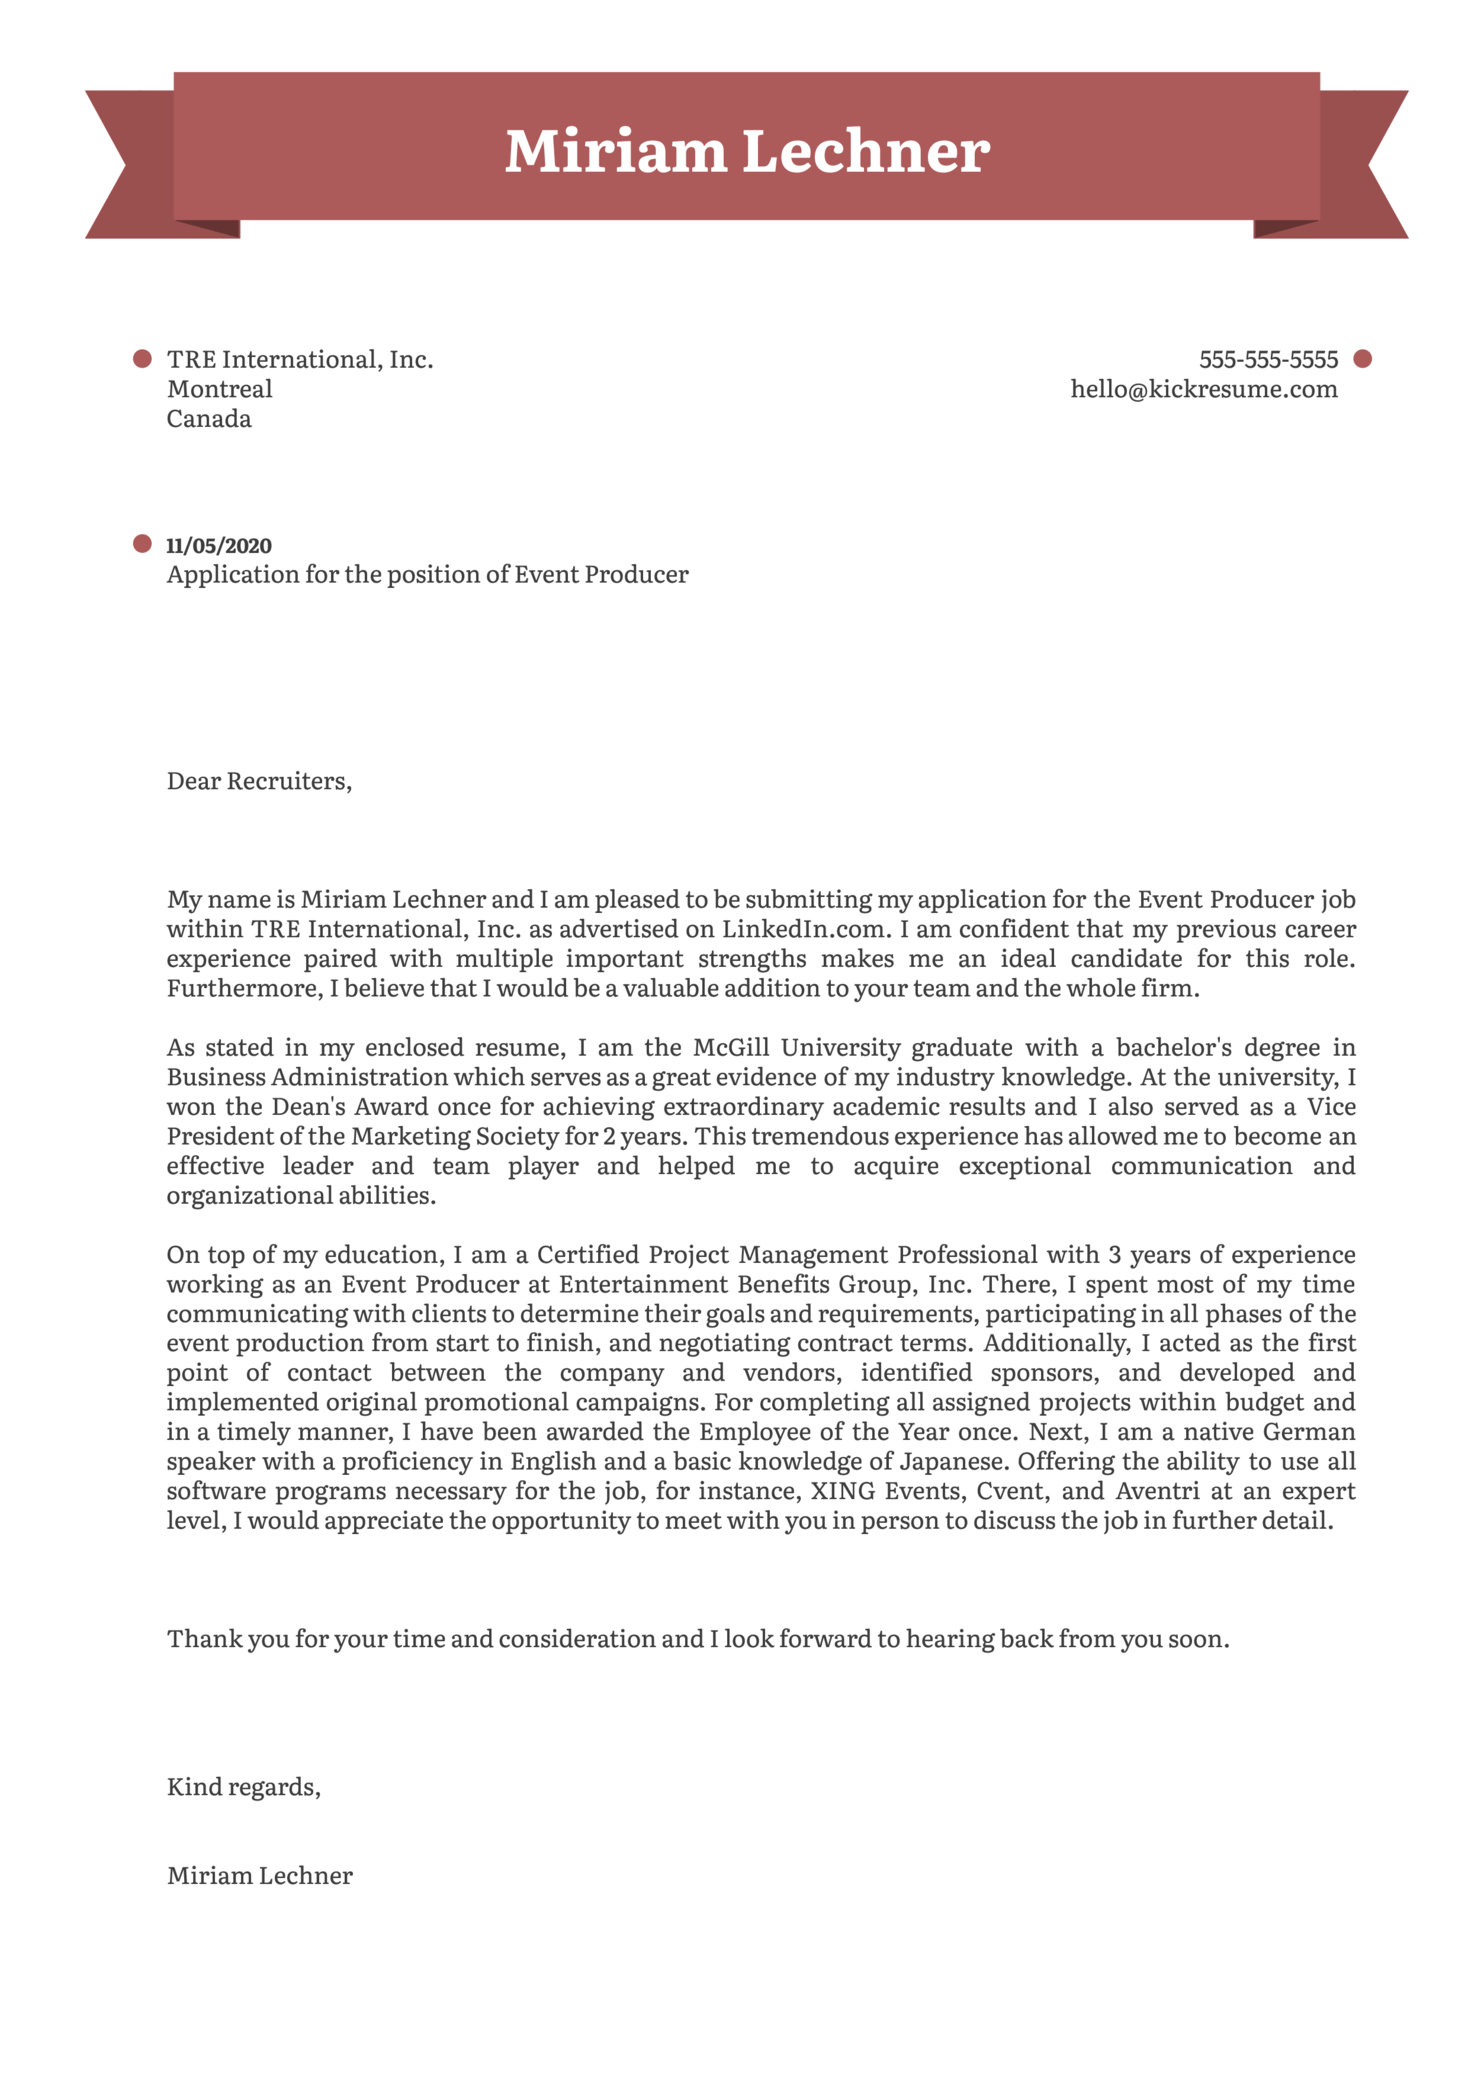 Event Producer Cover Letter Sample